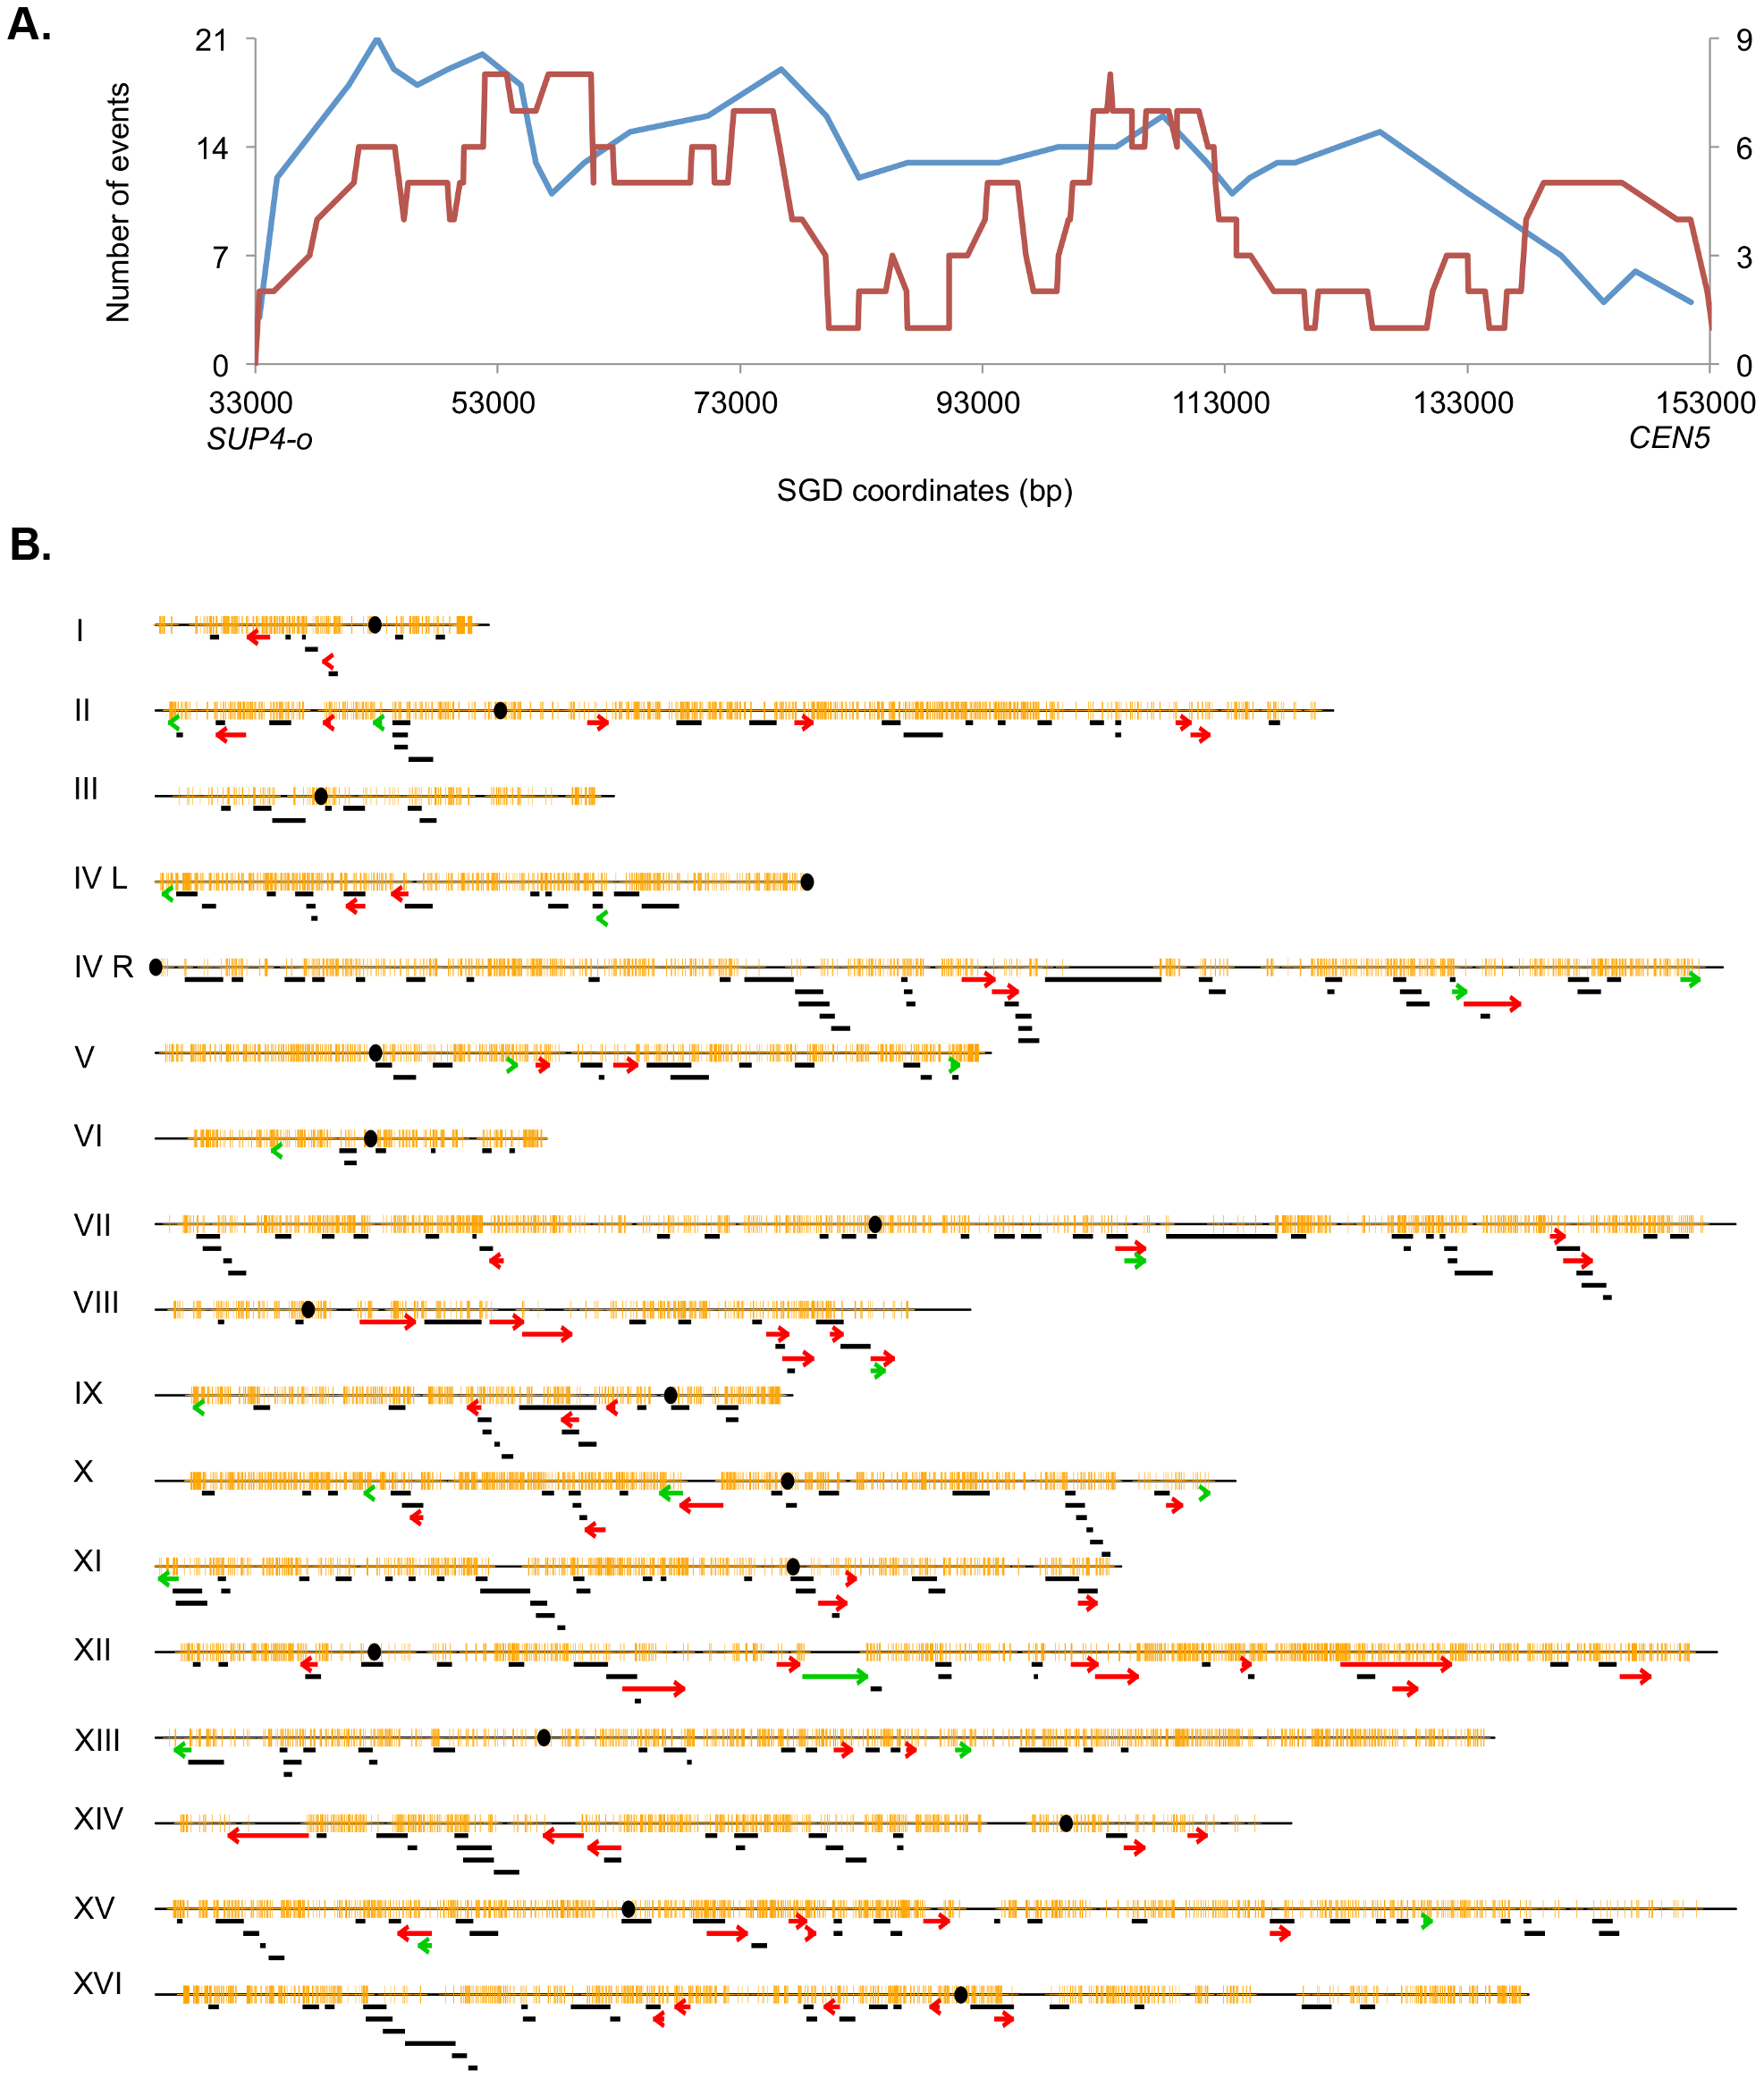 Patterns of selected events on chromosome V and unselected events throughout the genome.